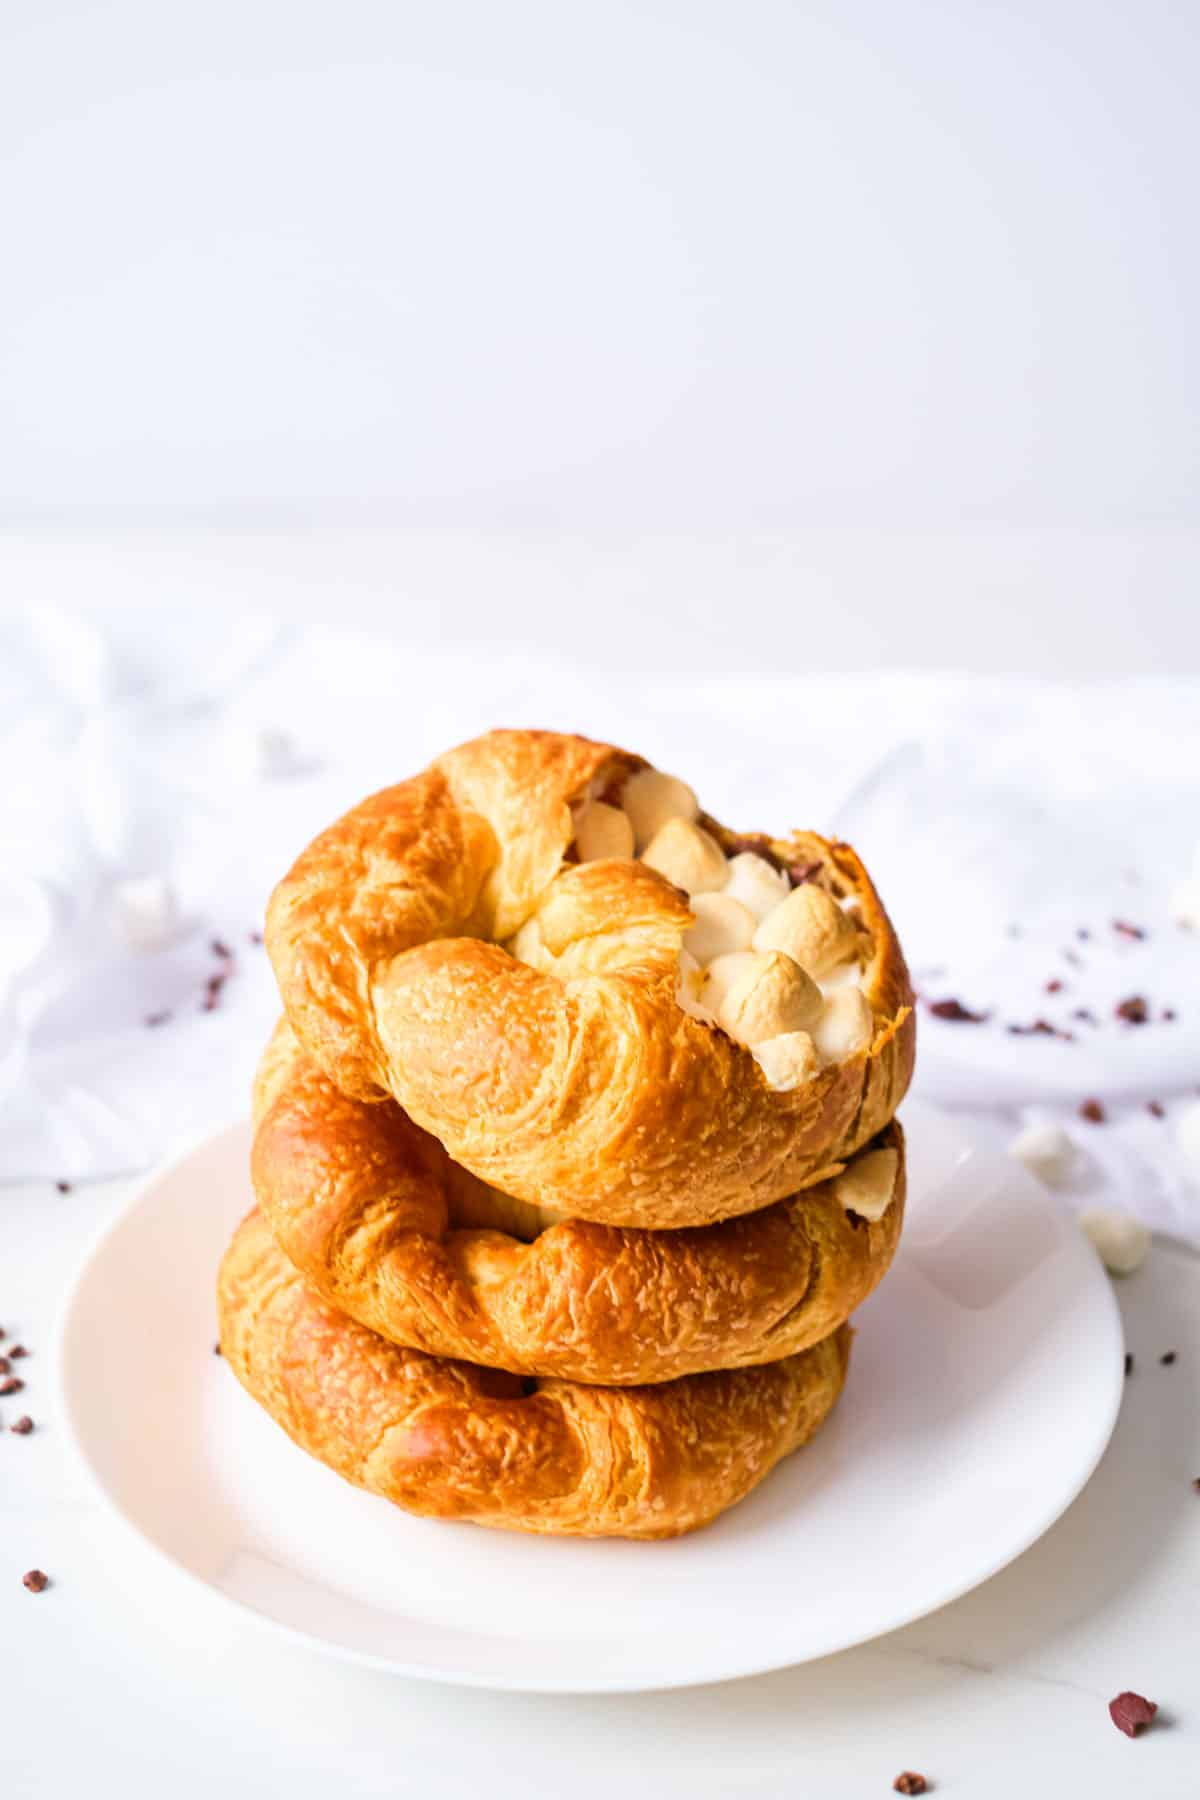 three completed stuffed croissant breakfast boats stacked on a white plate